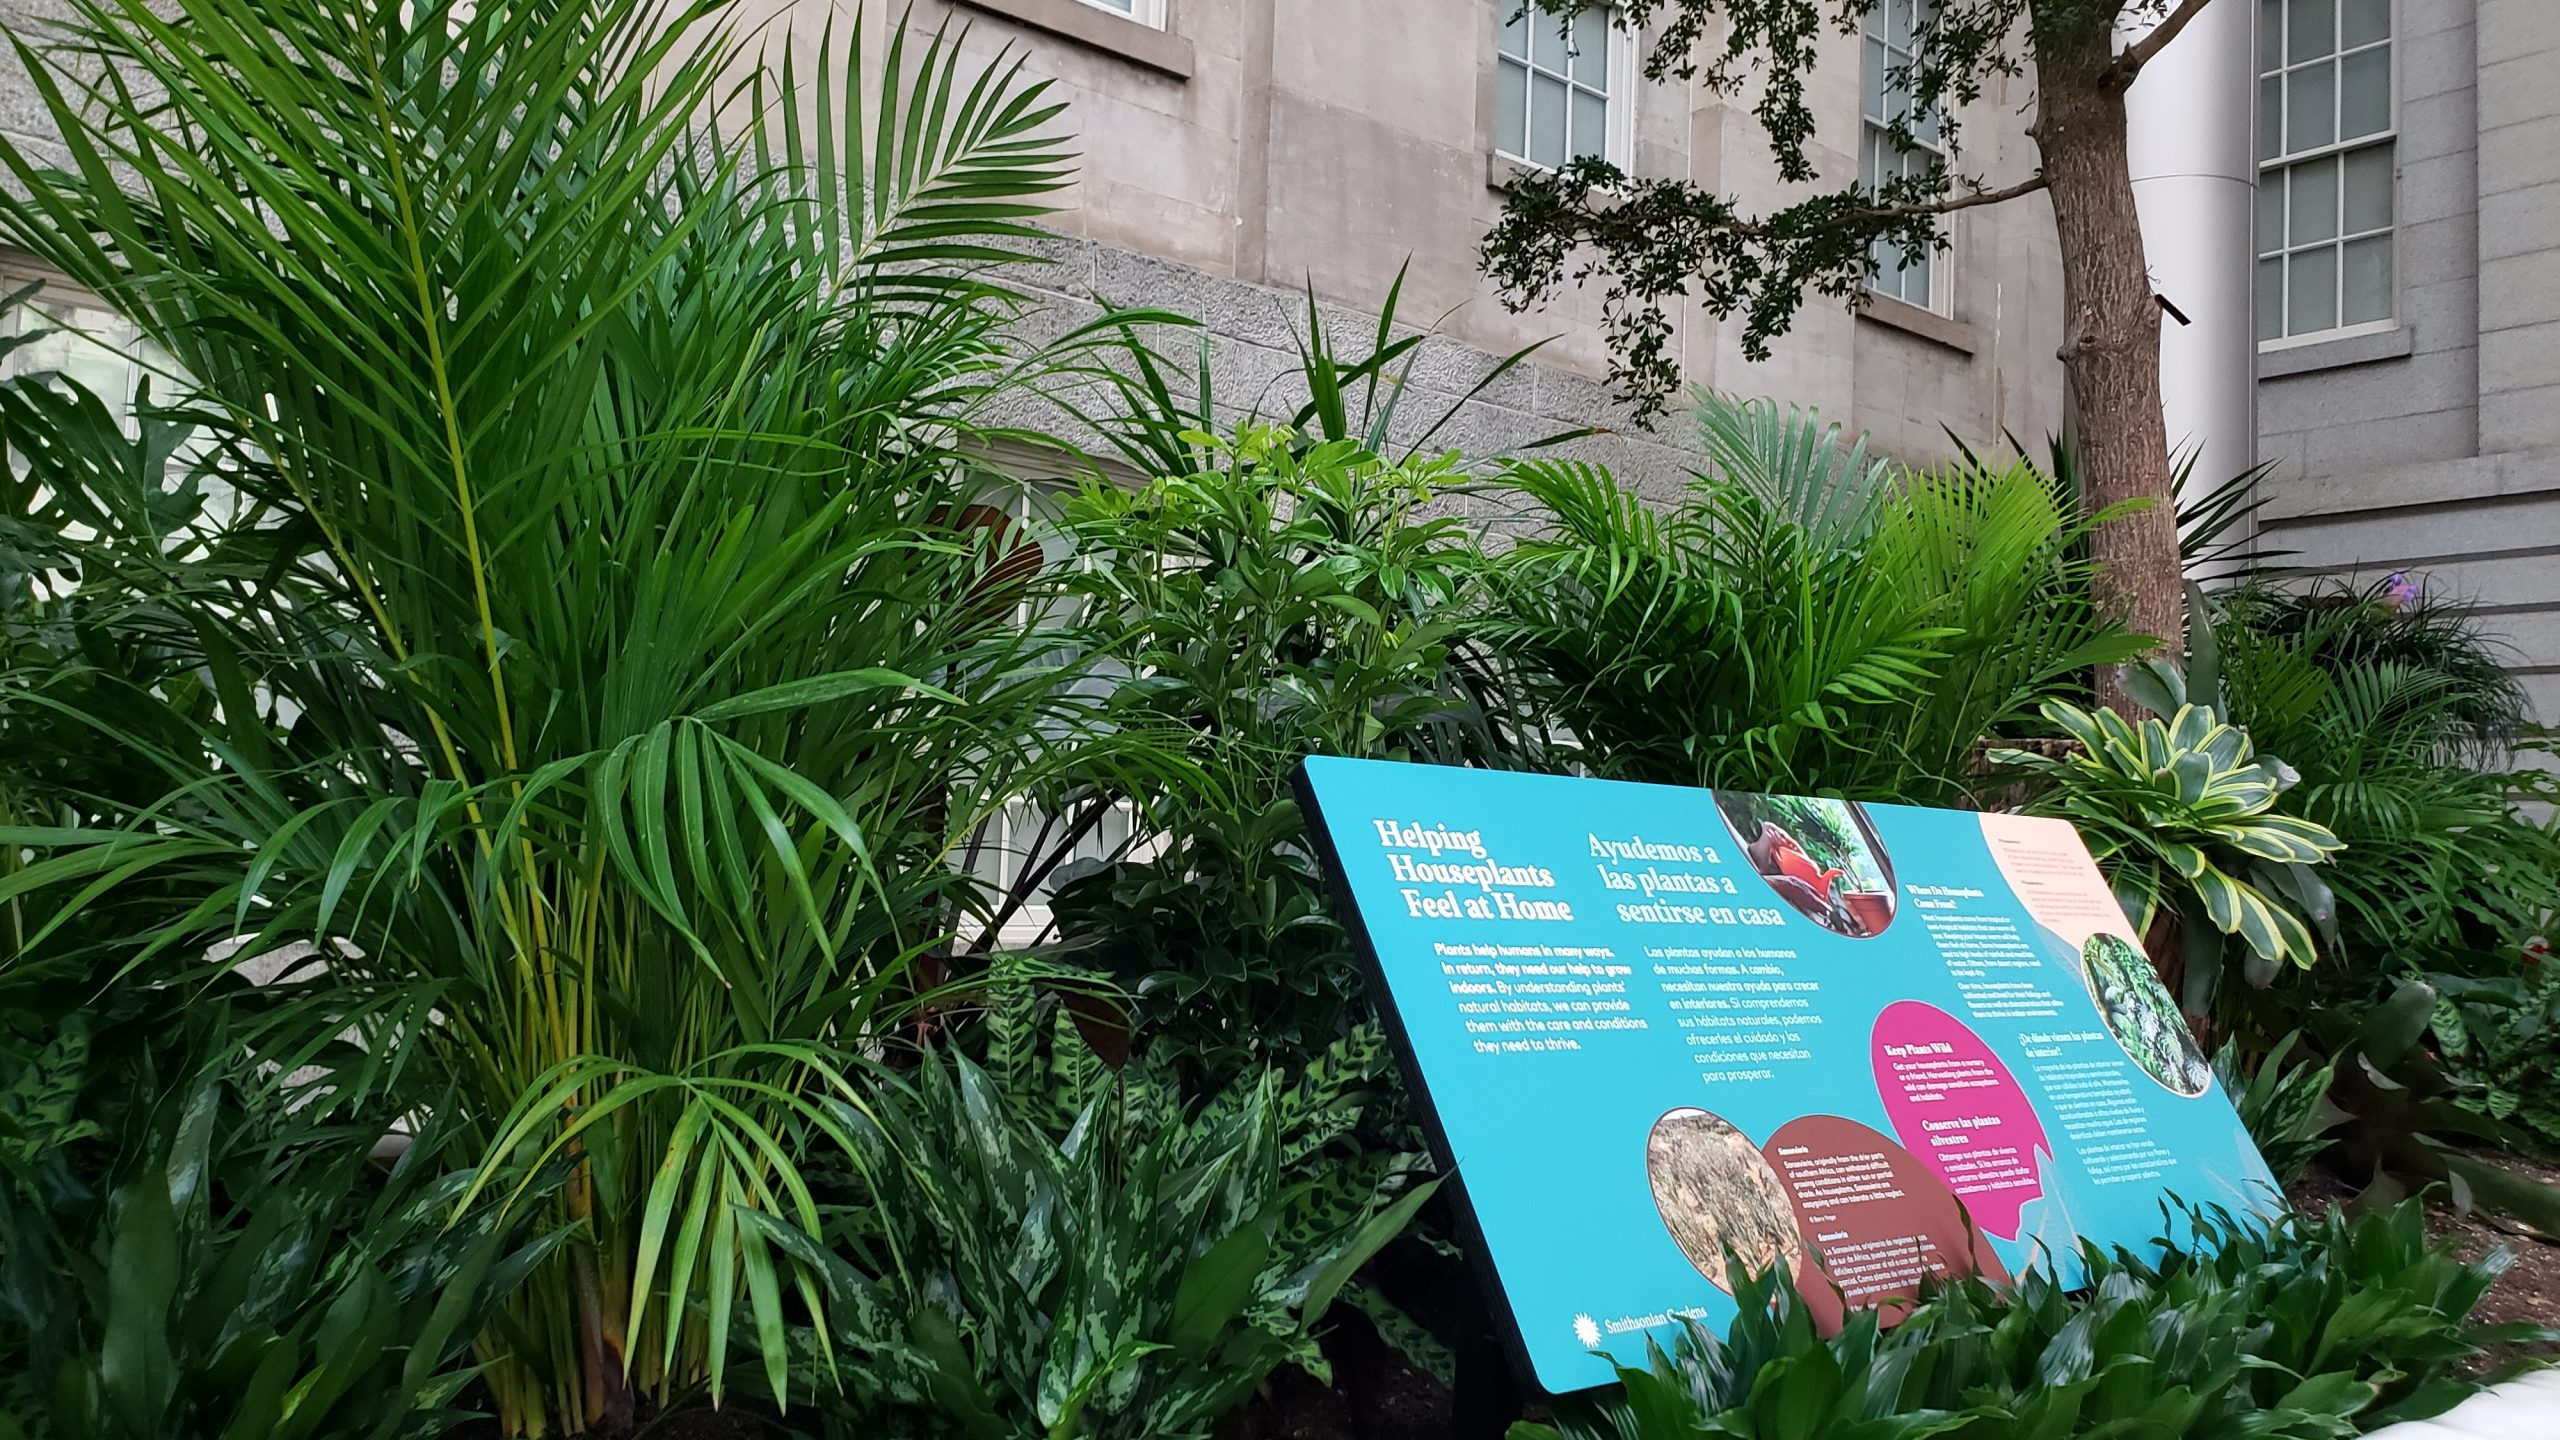 Helping Houseplants Feel at Home Panel at The Great Indoors Exhibition inside the Robert and Arlene Kogod Courtyard